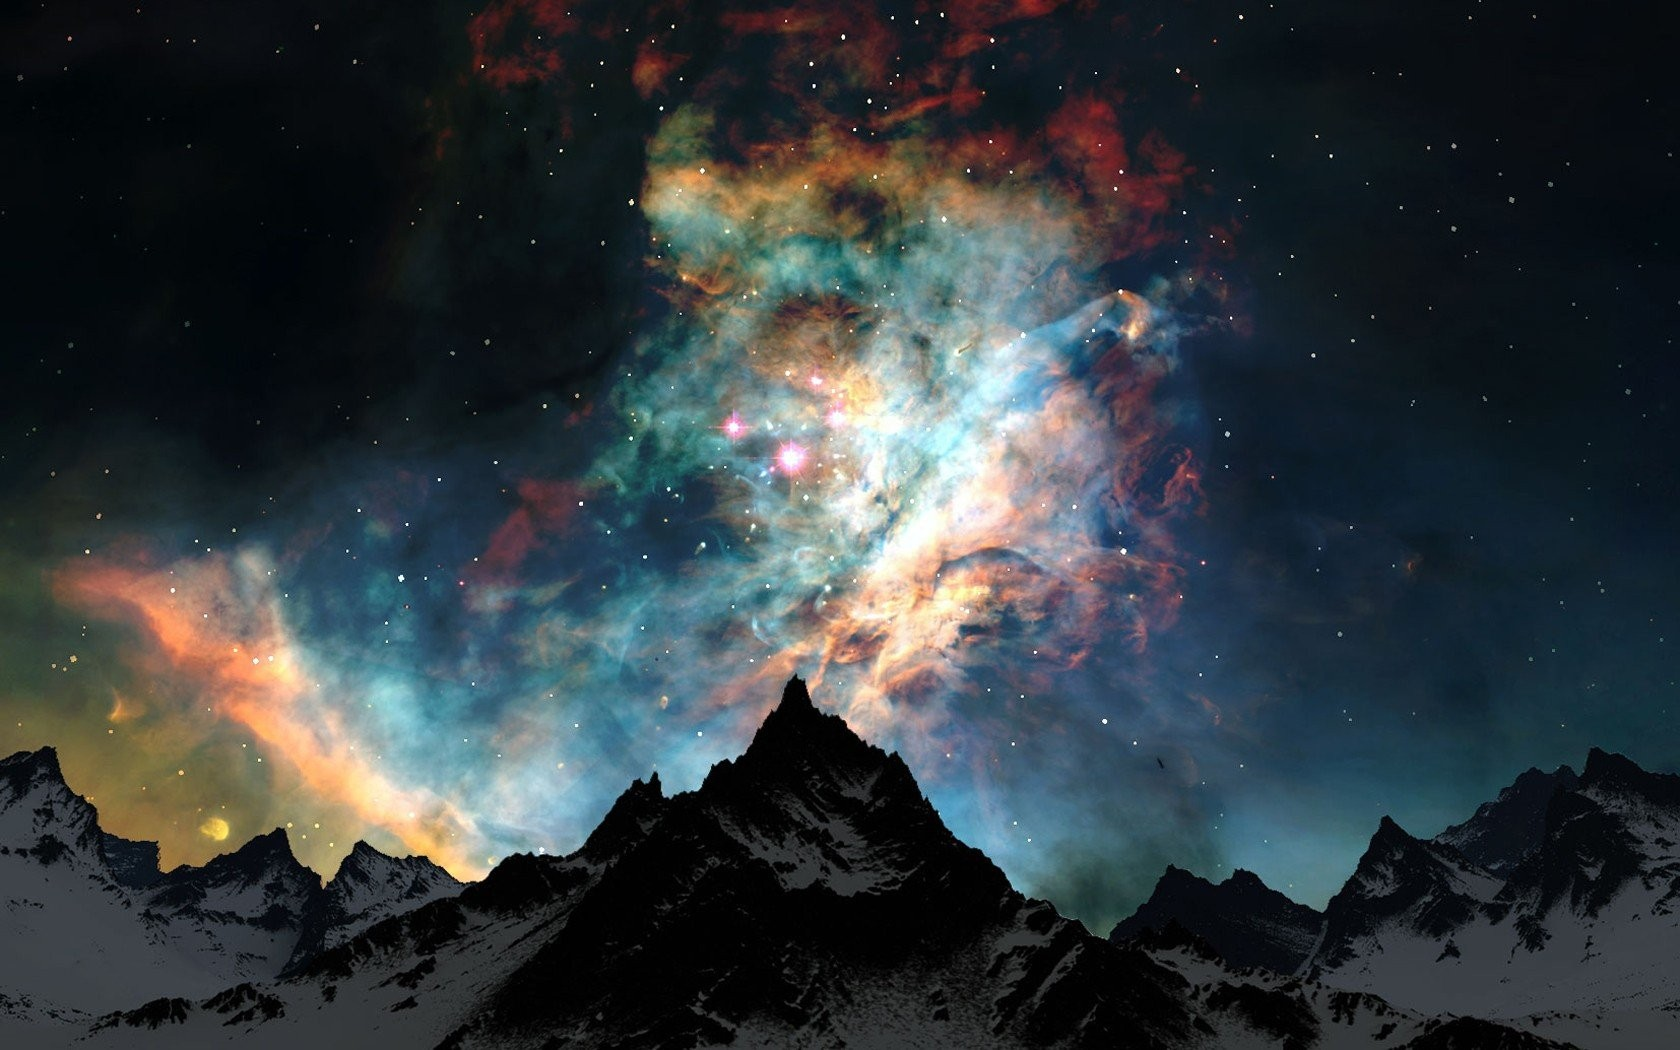 General 1680x1050 space stars nebula galaxy mountains snowy peak space art Earth atmosphere clouds